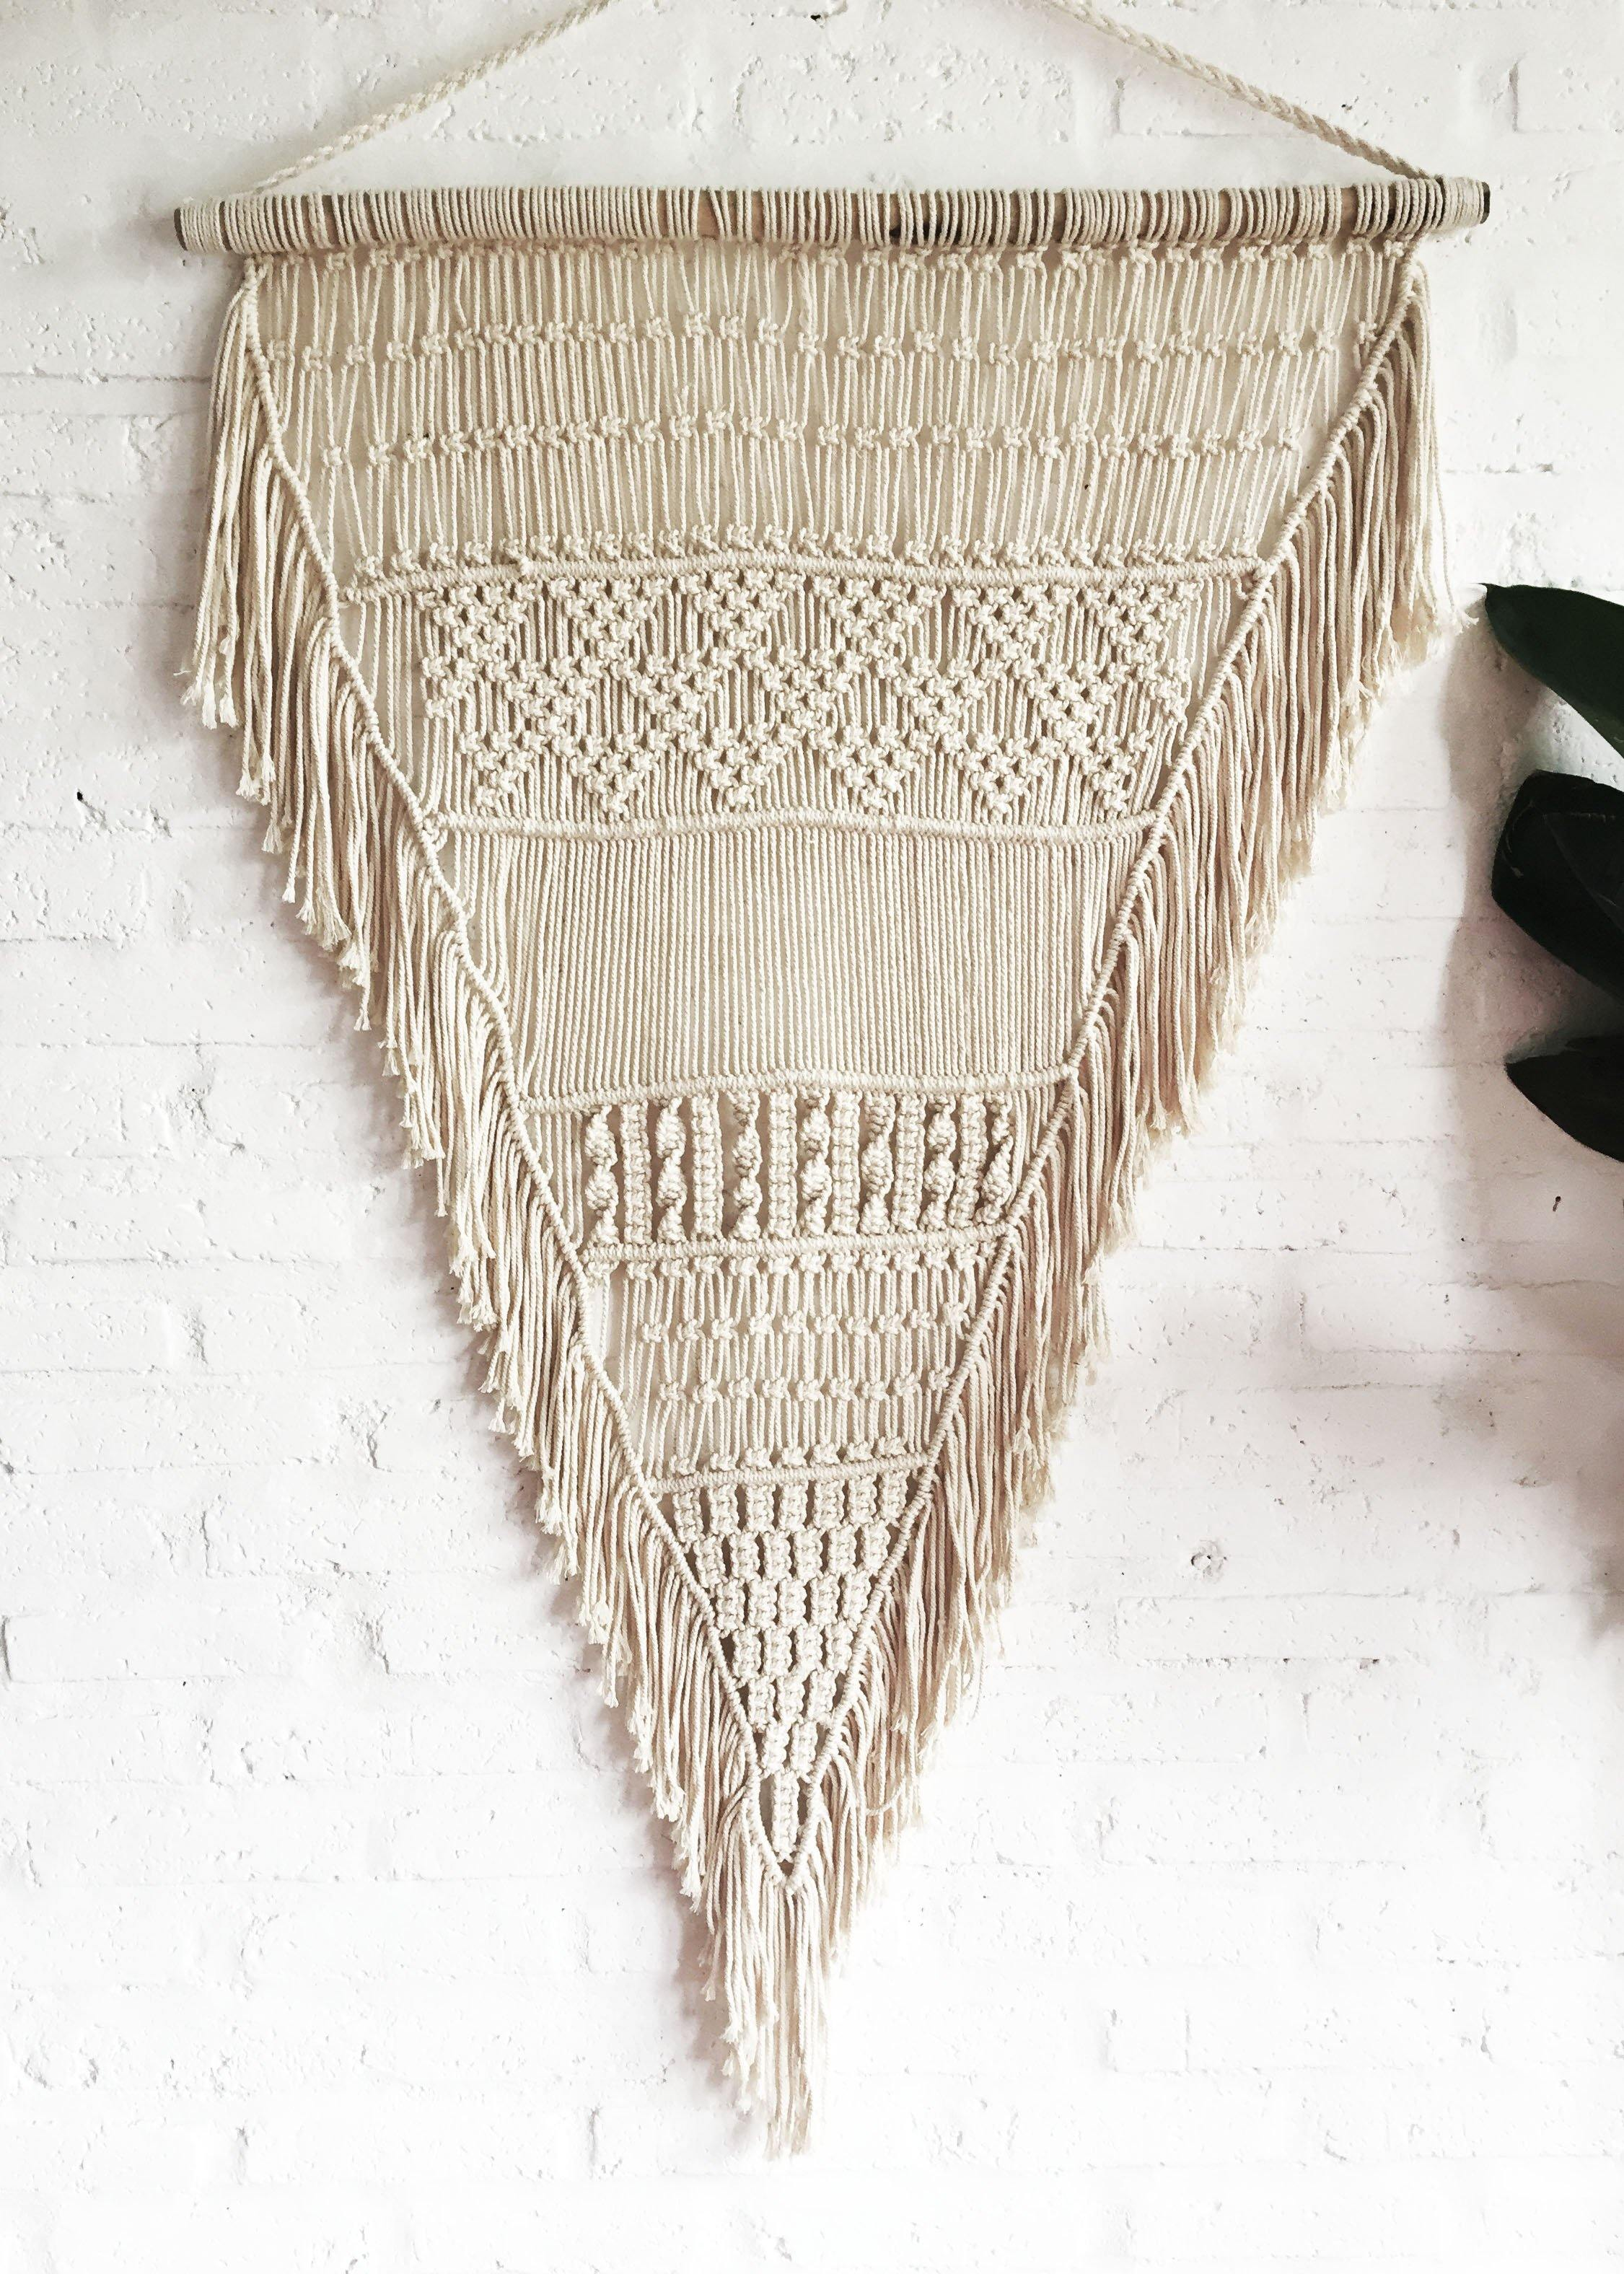 THE BERMUDA MACRAME - Black Salt Co